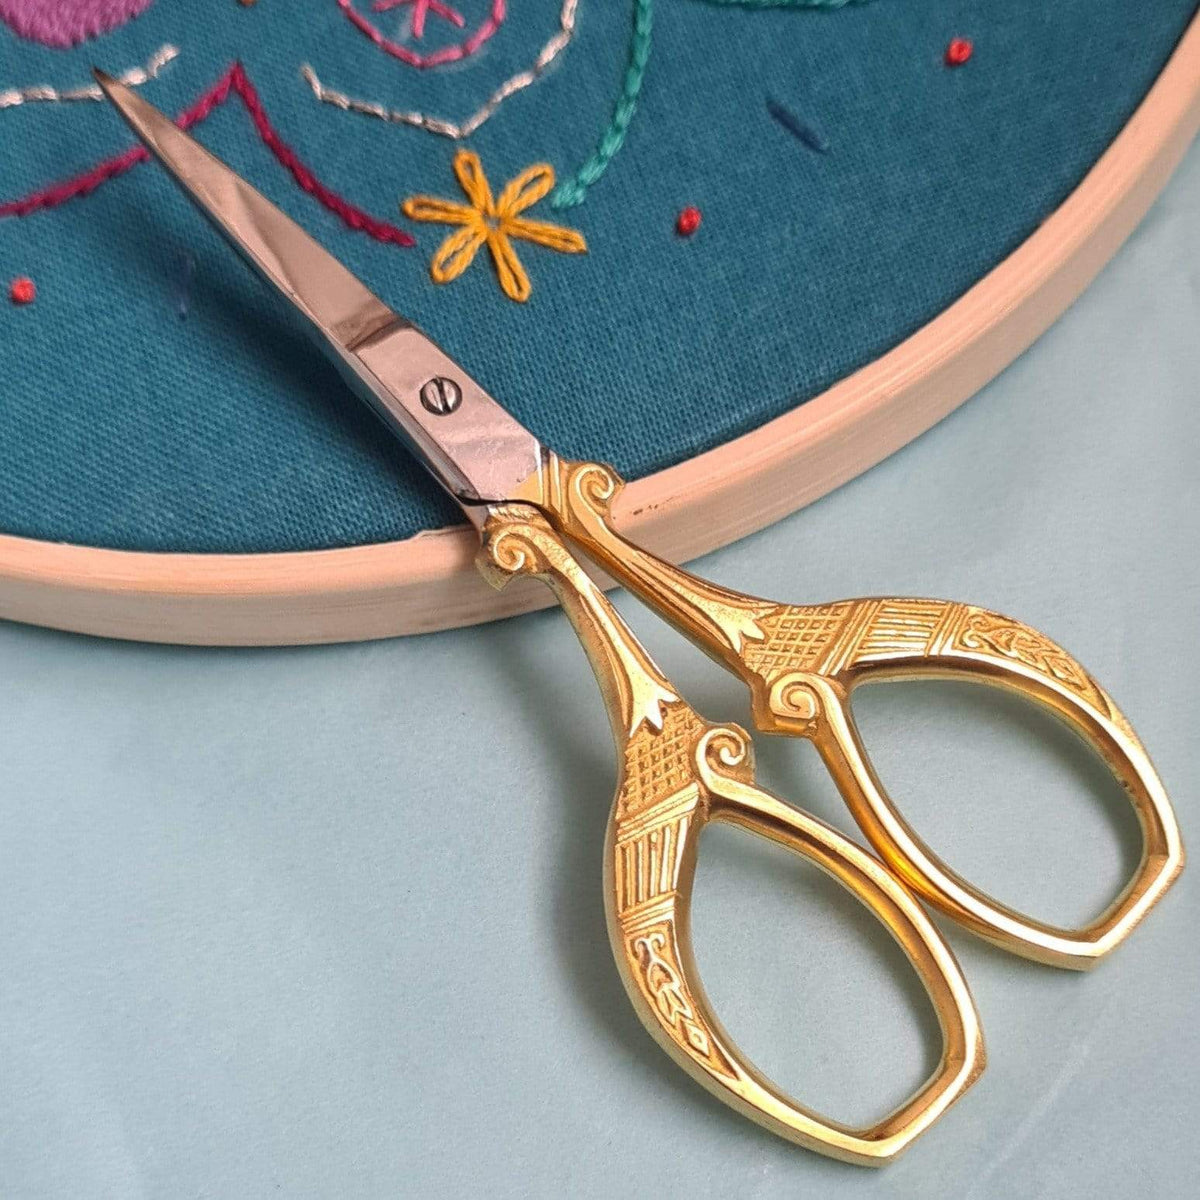 Paraffle Embroidery Supplies & Accessories Vintage Style Embroidery Scissors